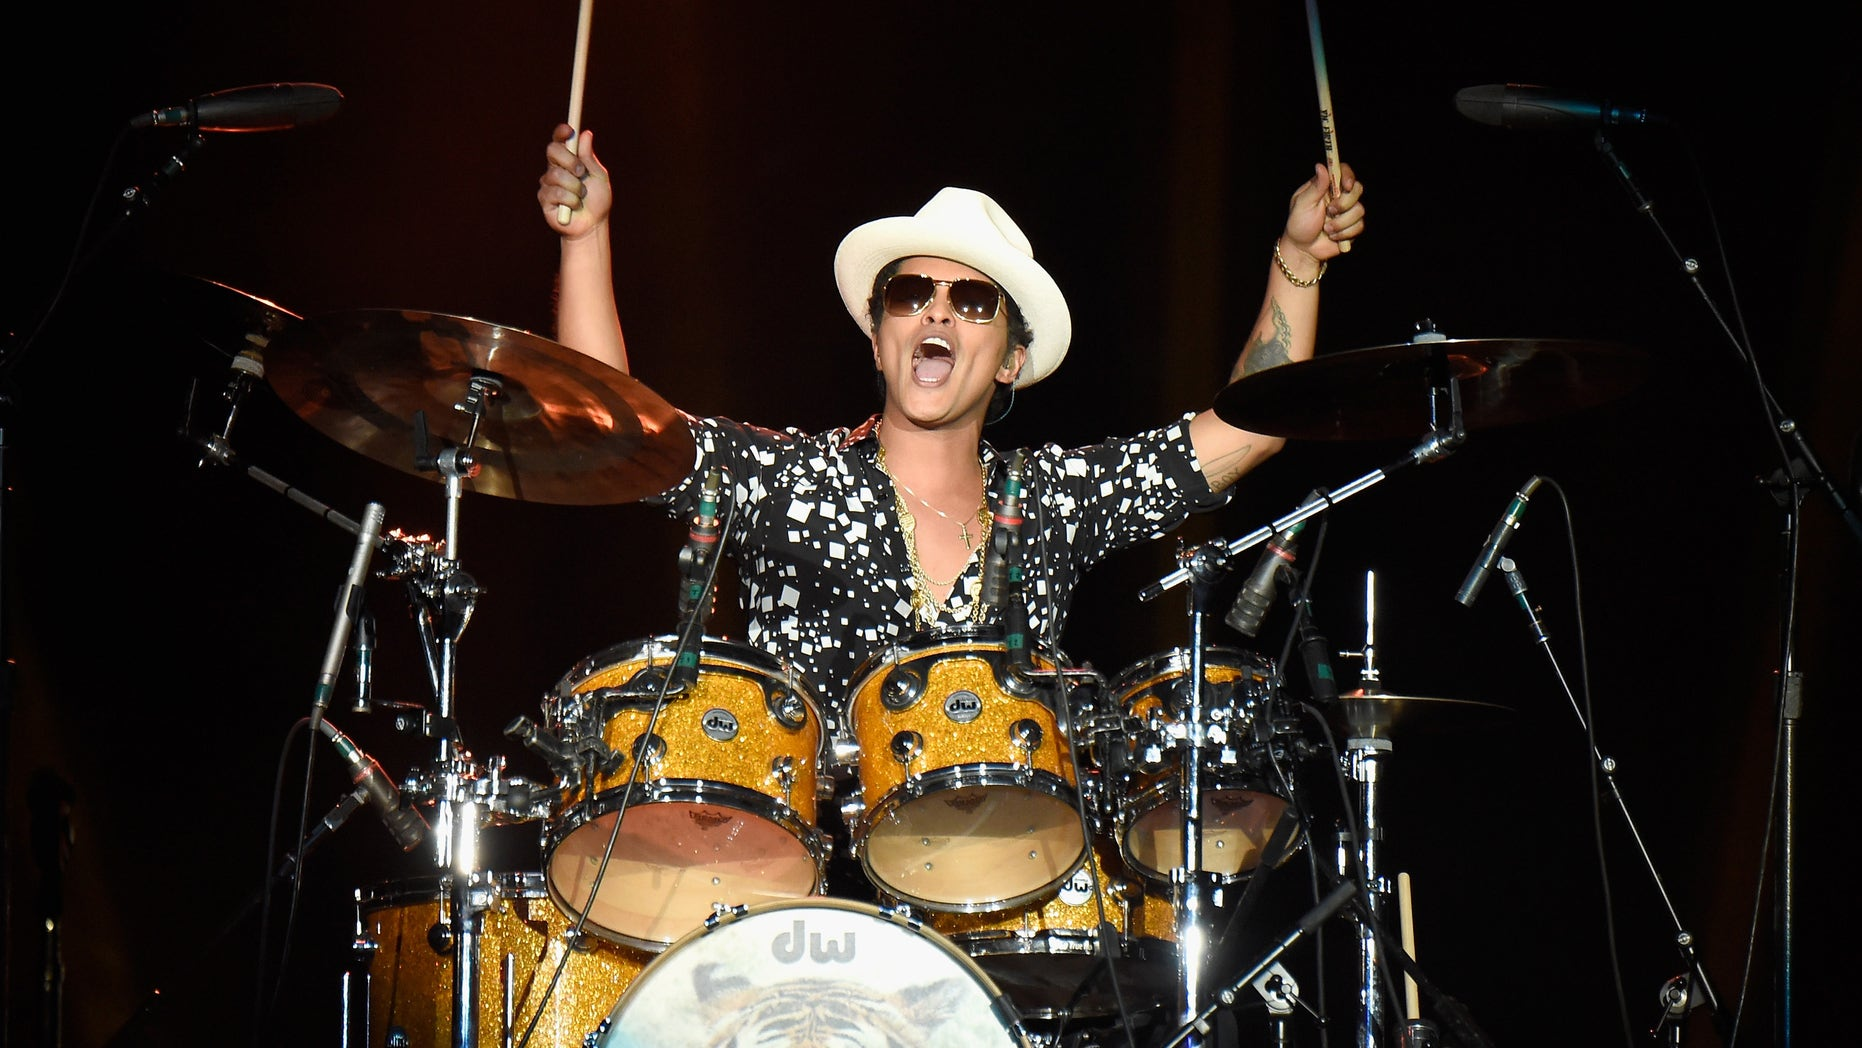 LAS VEGAS, NV - MAY 16:  Musician Bruno Mars performs onstage during Rock in Rio USA at the MGM Resorts Festival Grounds on May 16, 2015 in Las Vegas, Nevada.  (Photo by Kevin Mazur/Getty Images)